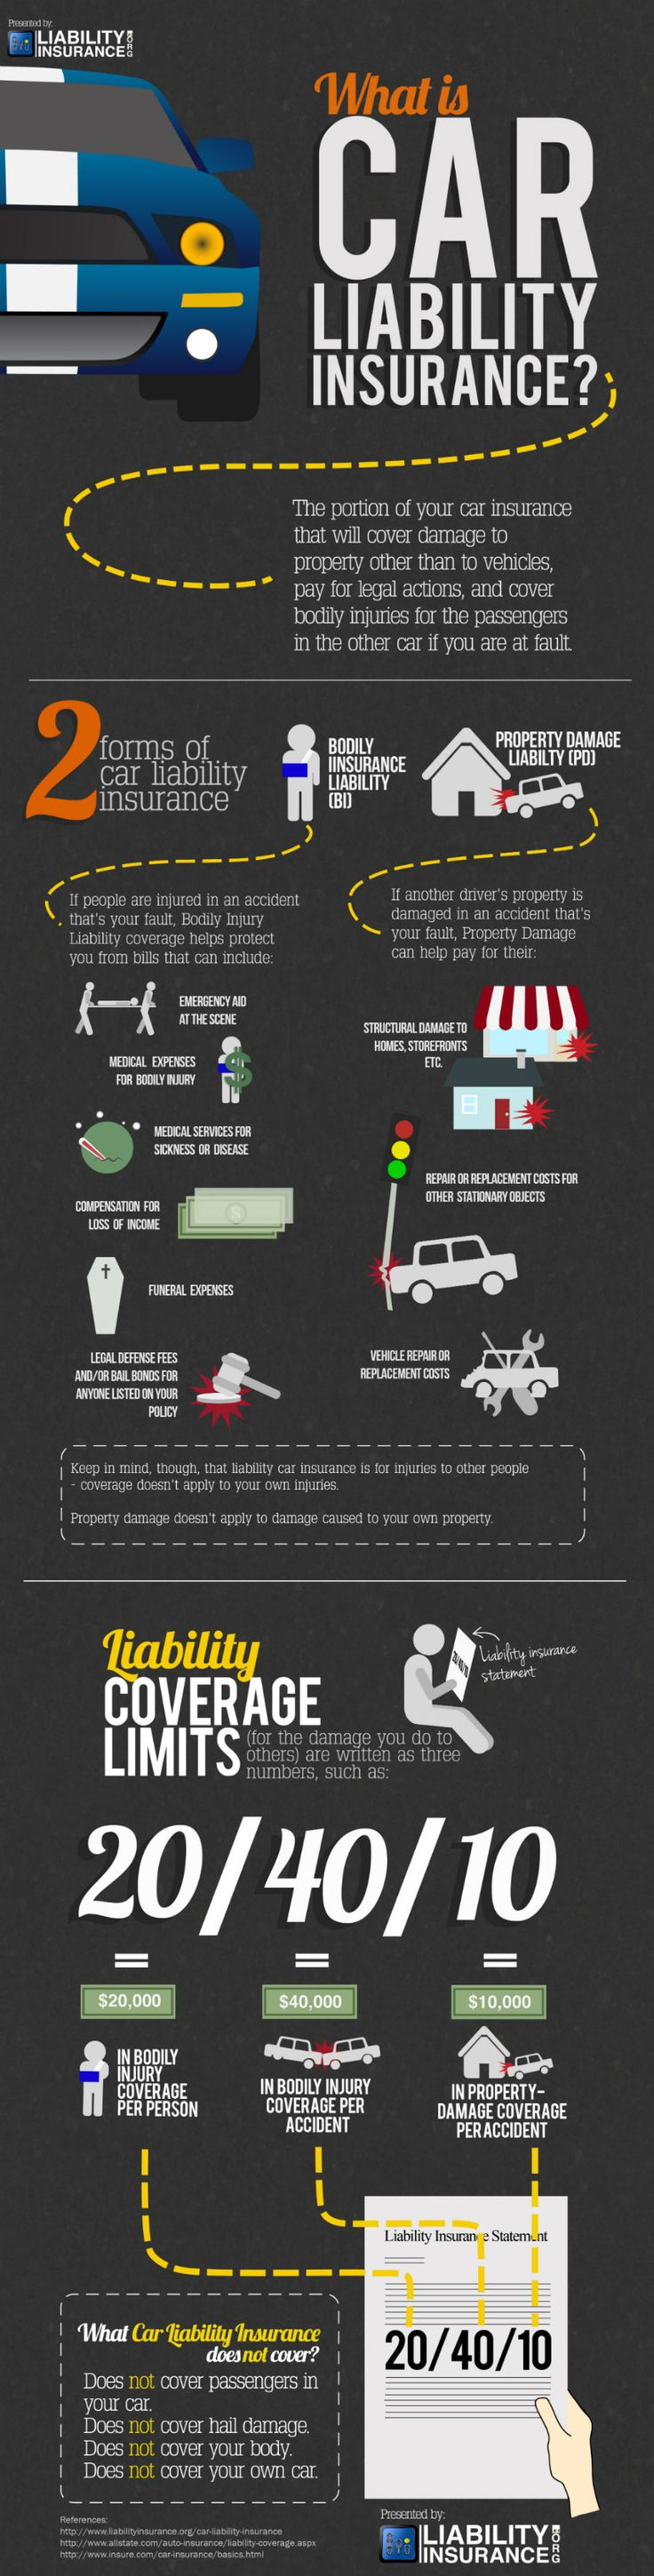 http://lightimagequotes.com/car-insurance-infographic-car-insurance-infographic/